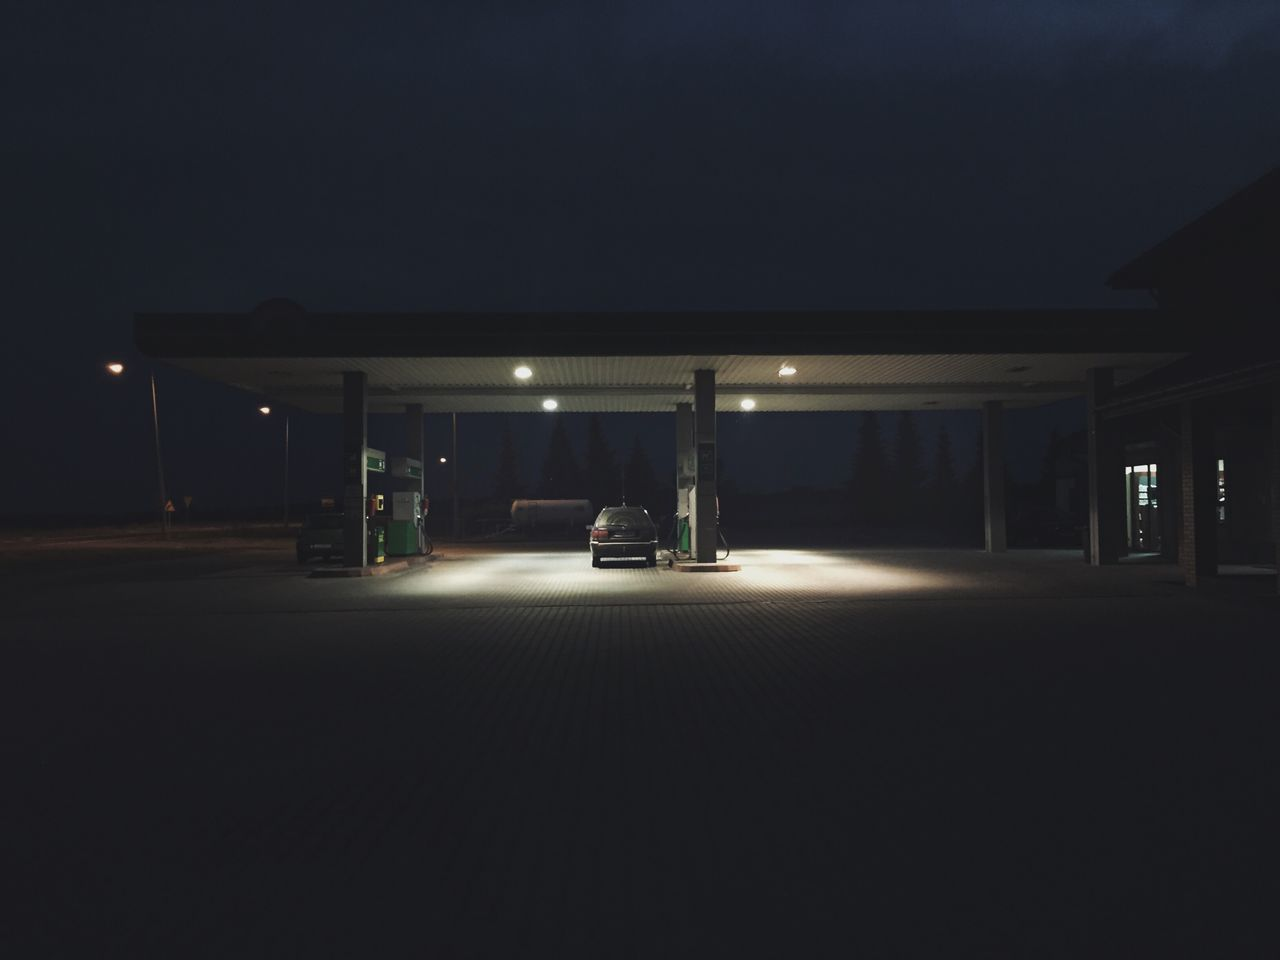 Cat in illuminated gas station at night